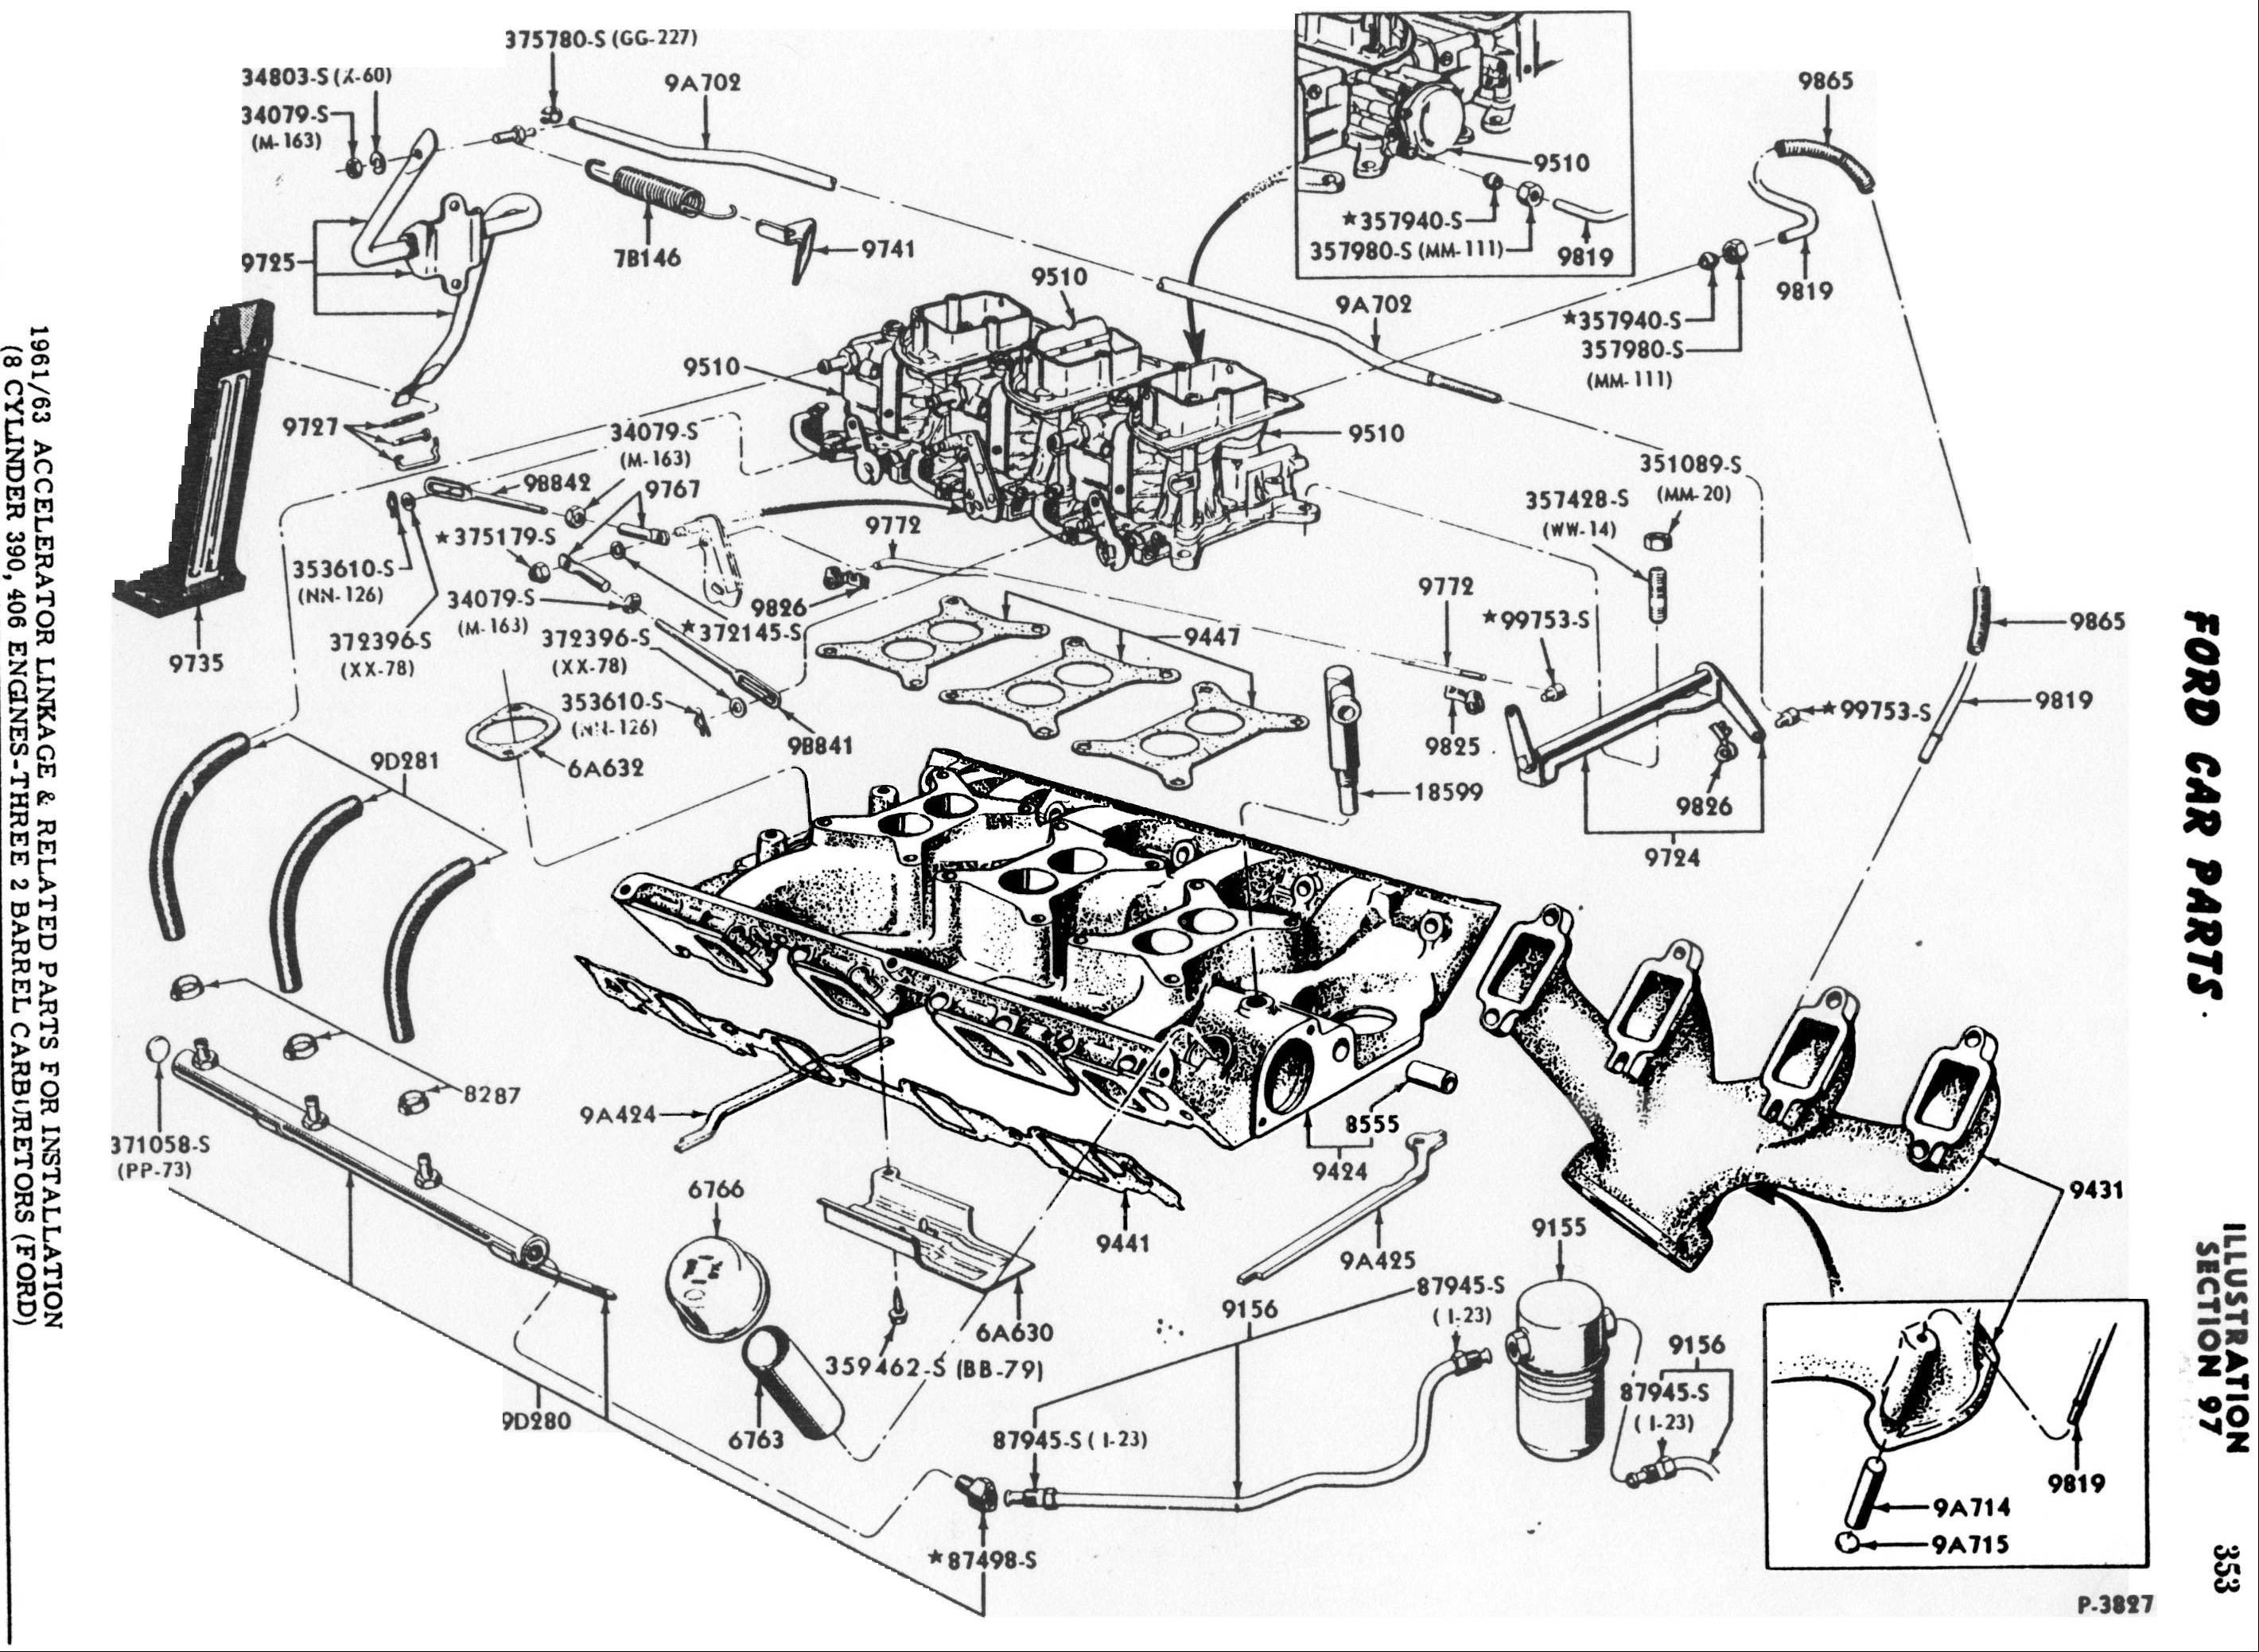 2000 ford focus engine diagram 1996 ford f 350 wiring